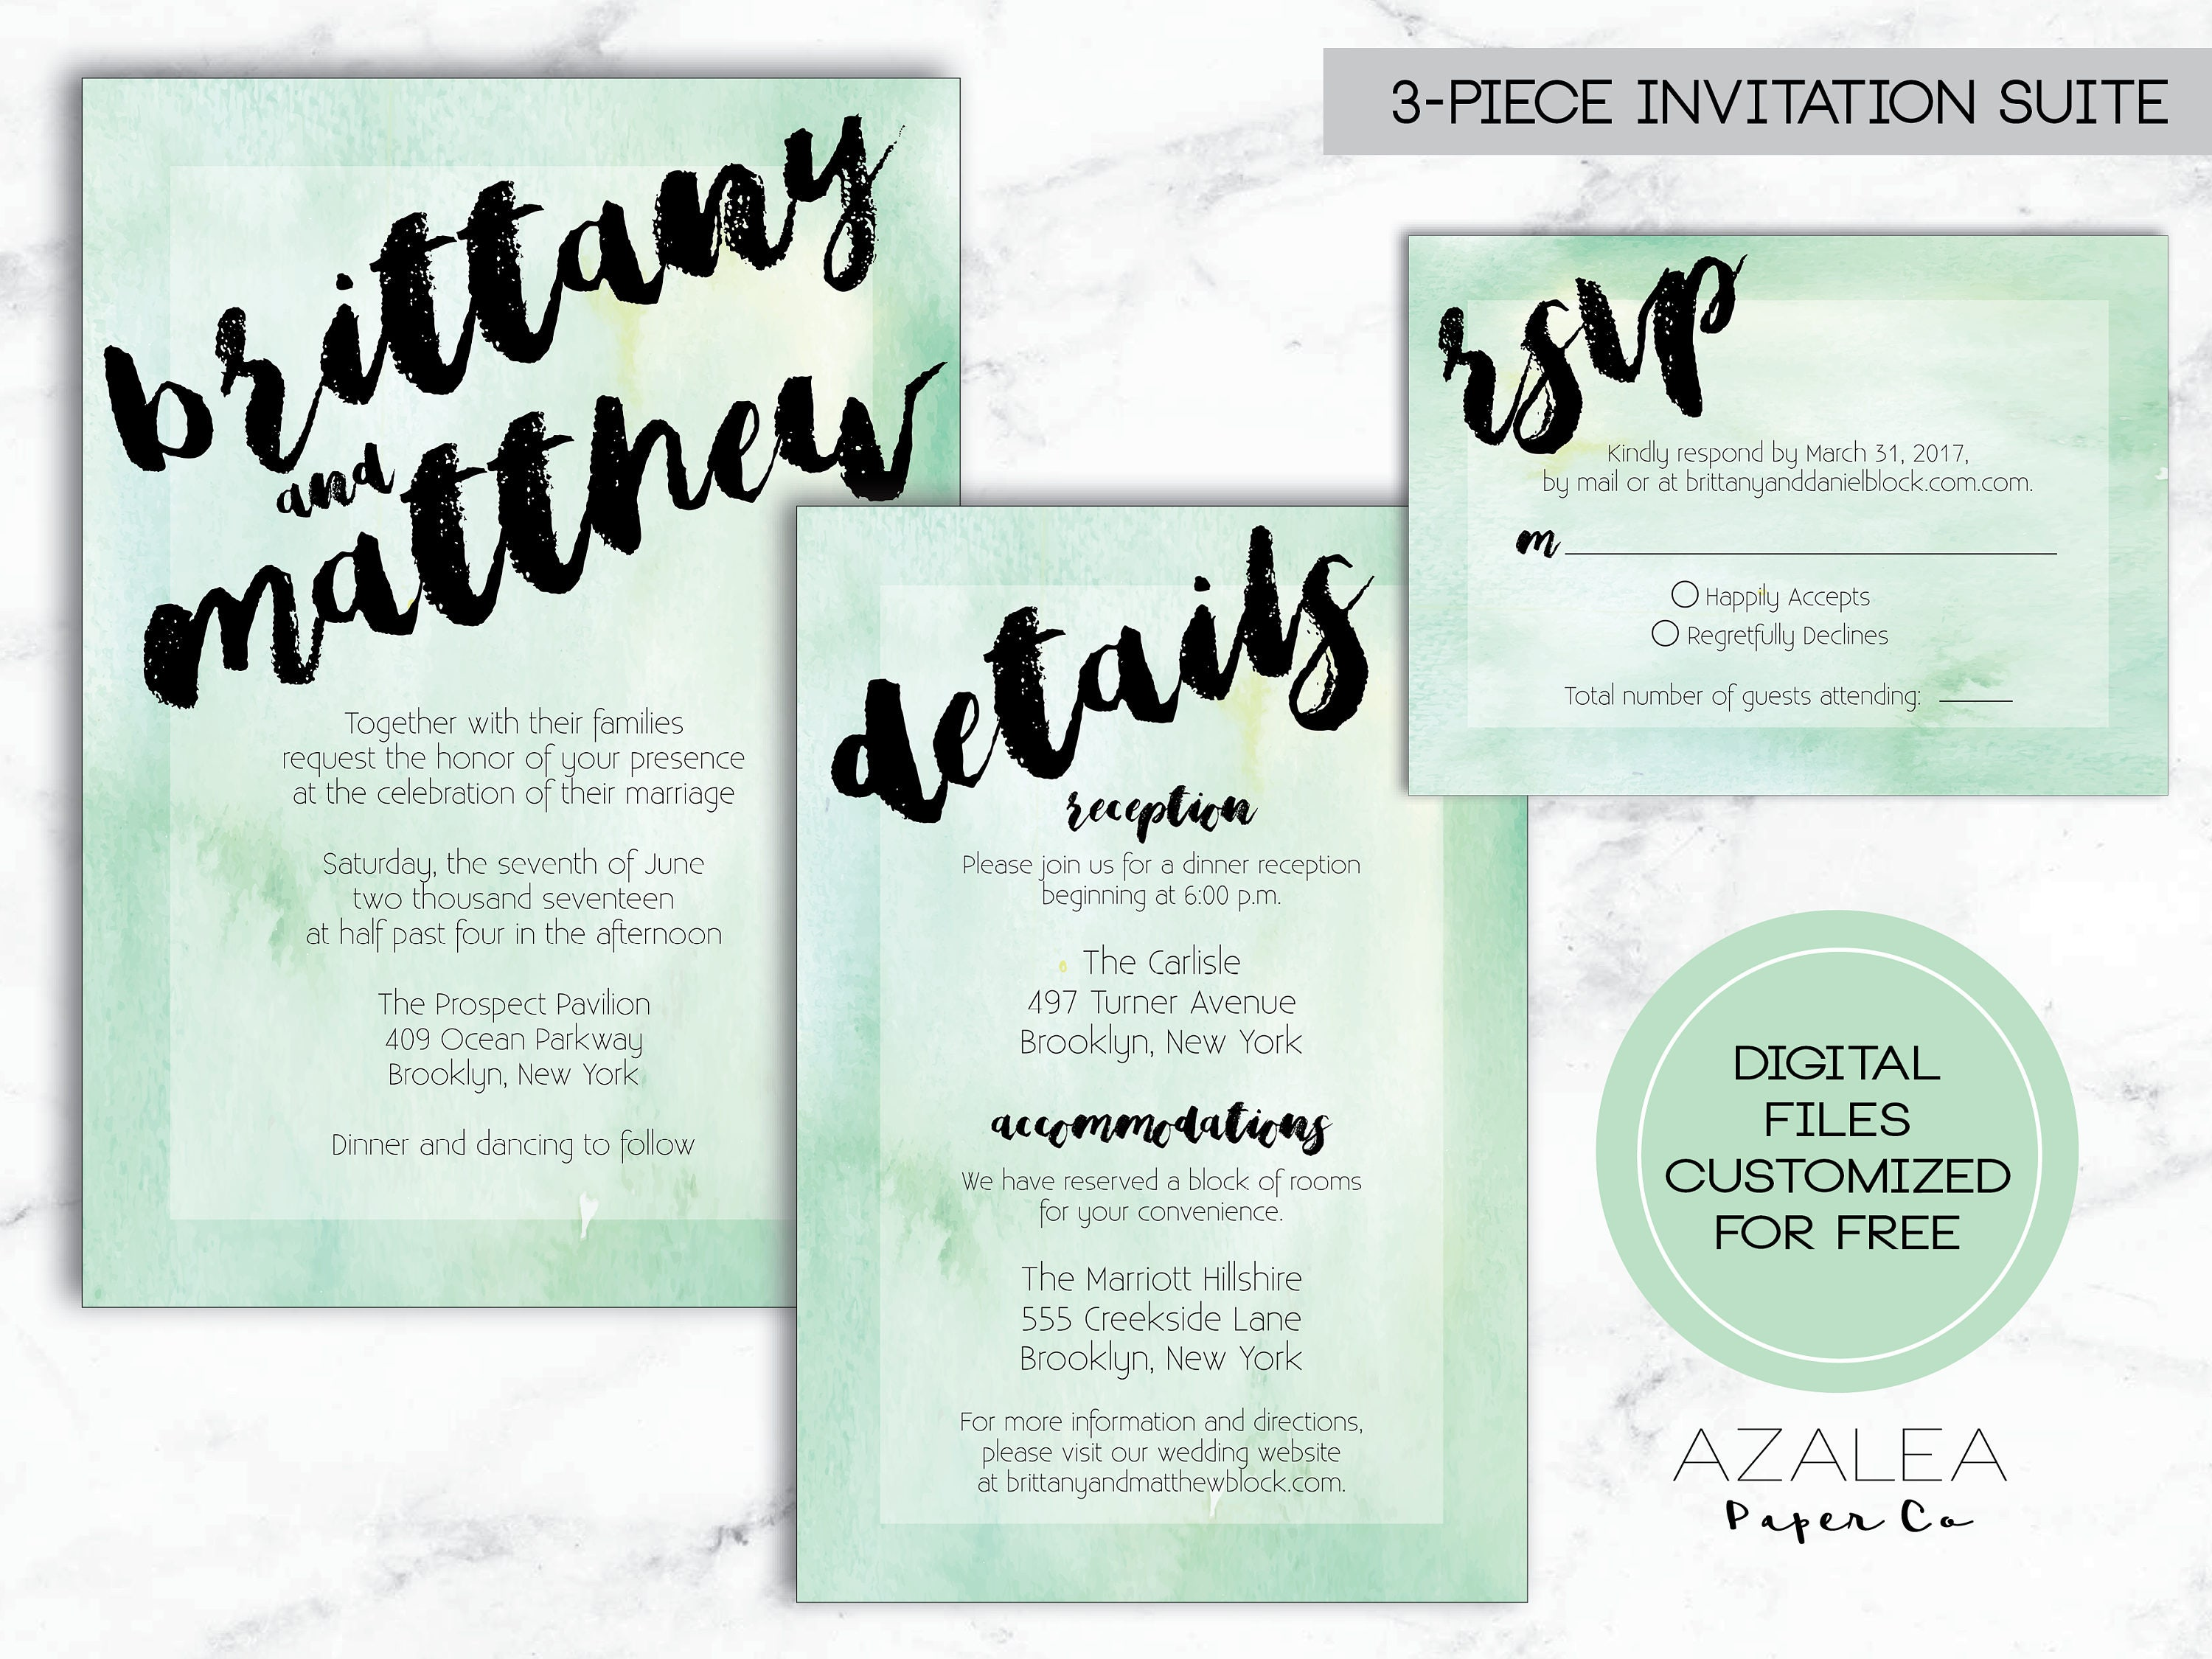 Mint Green Watercolor Wedding Invitation 3-Piece Suite | Beachy ...